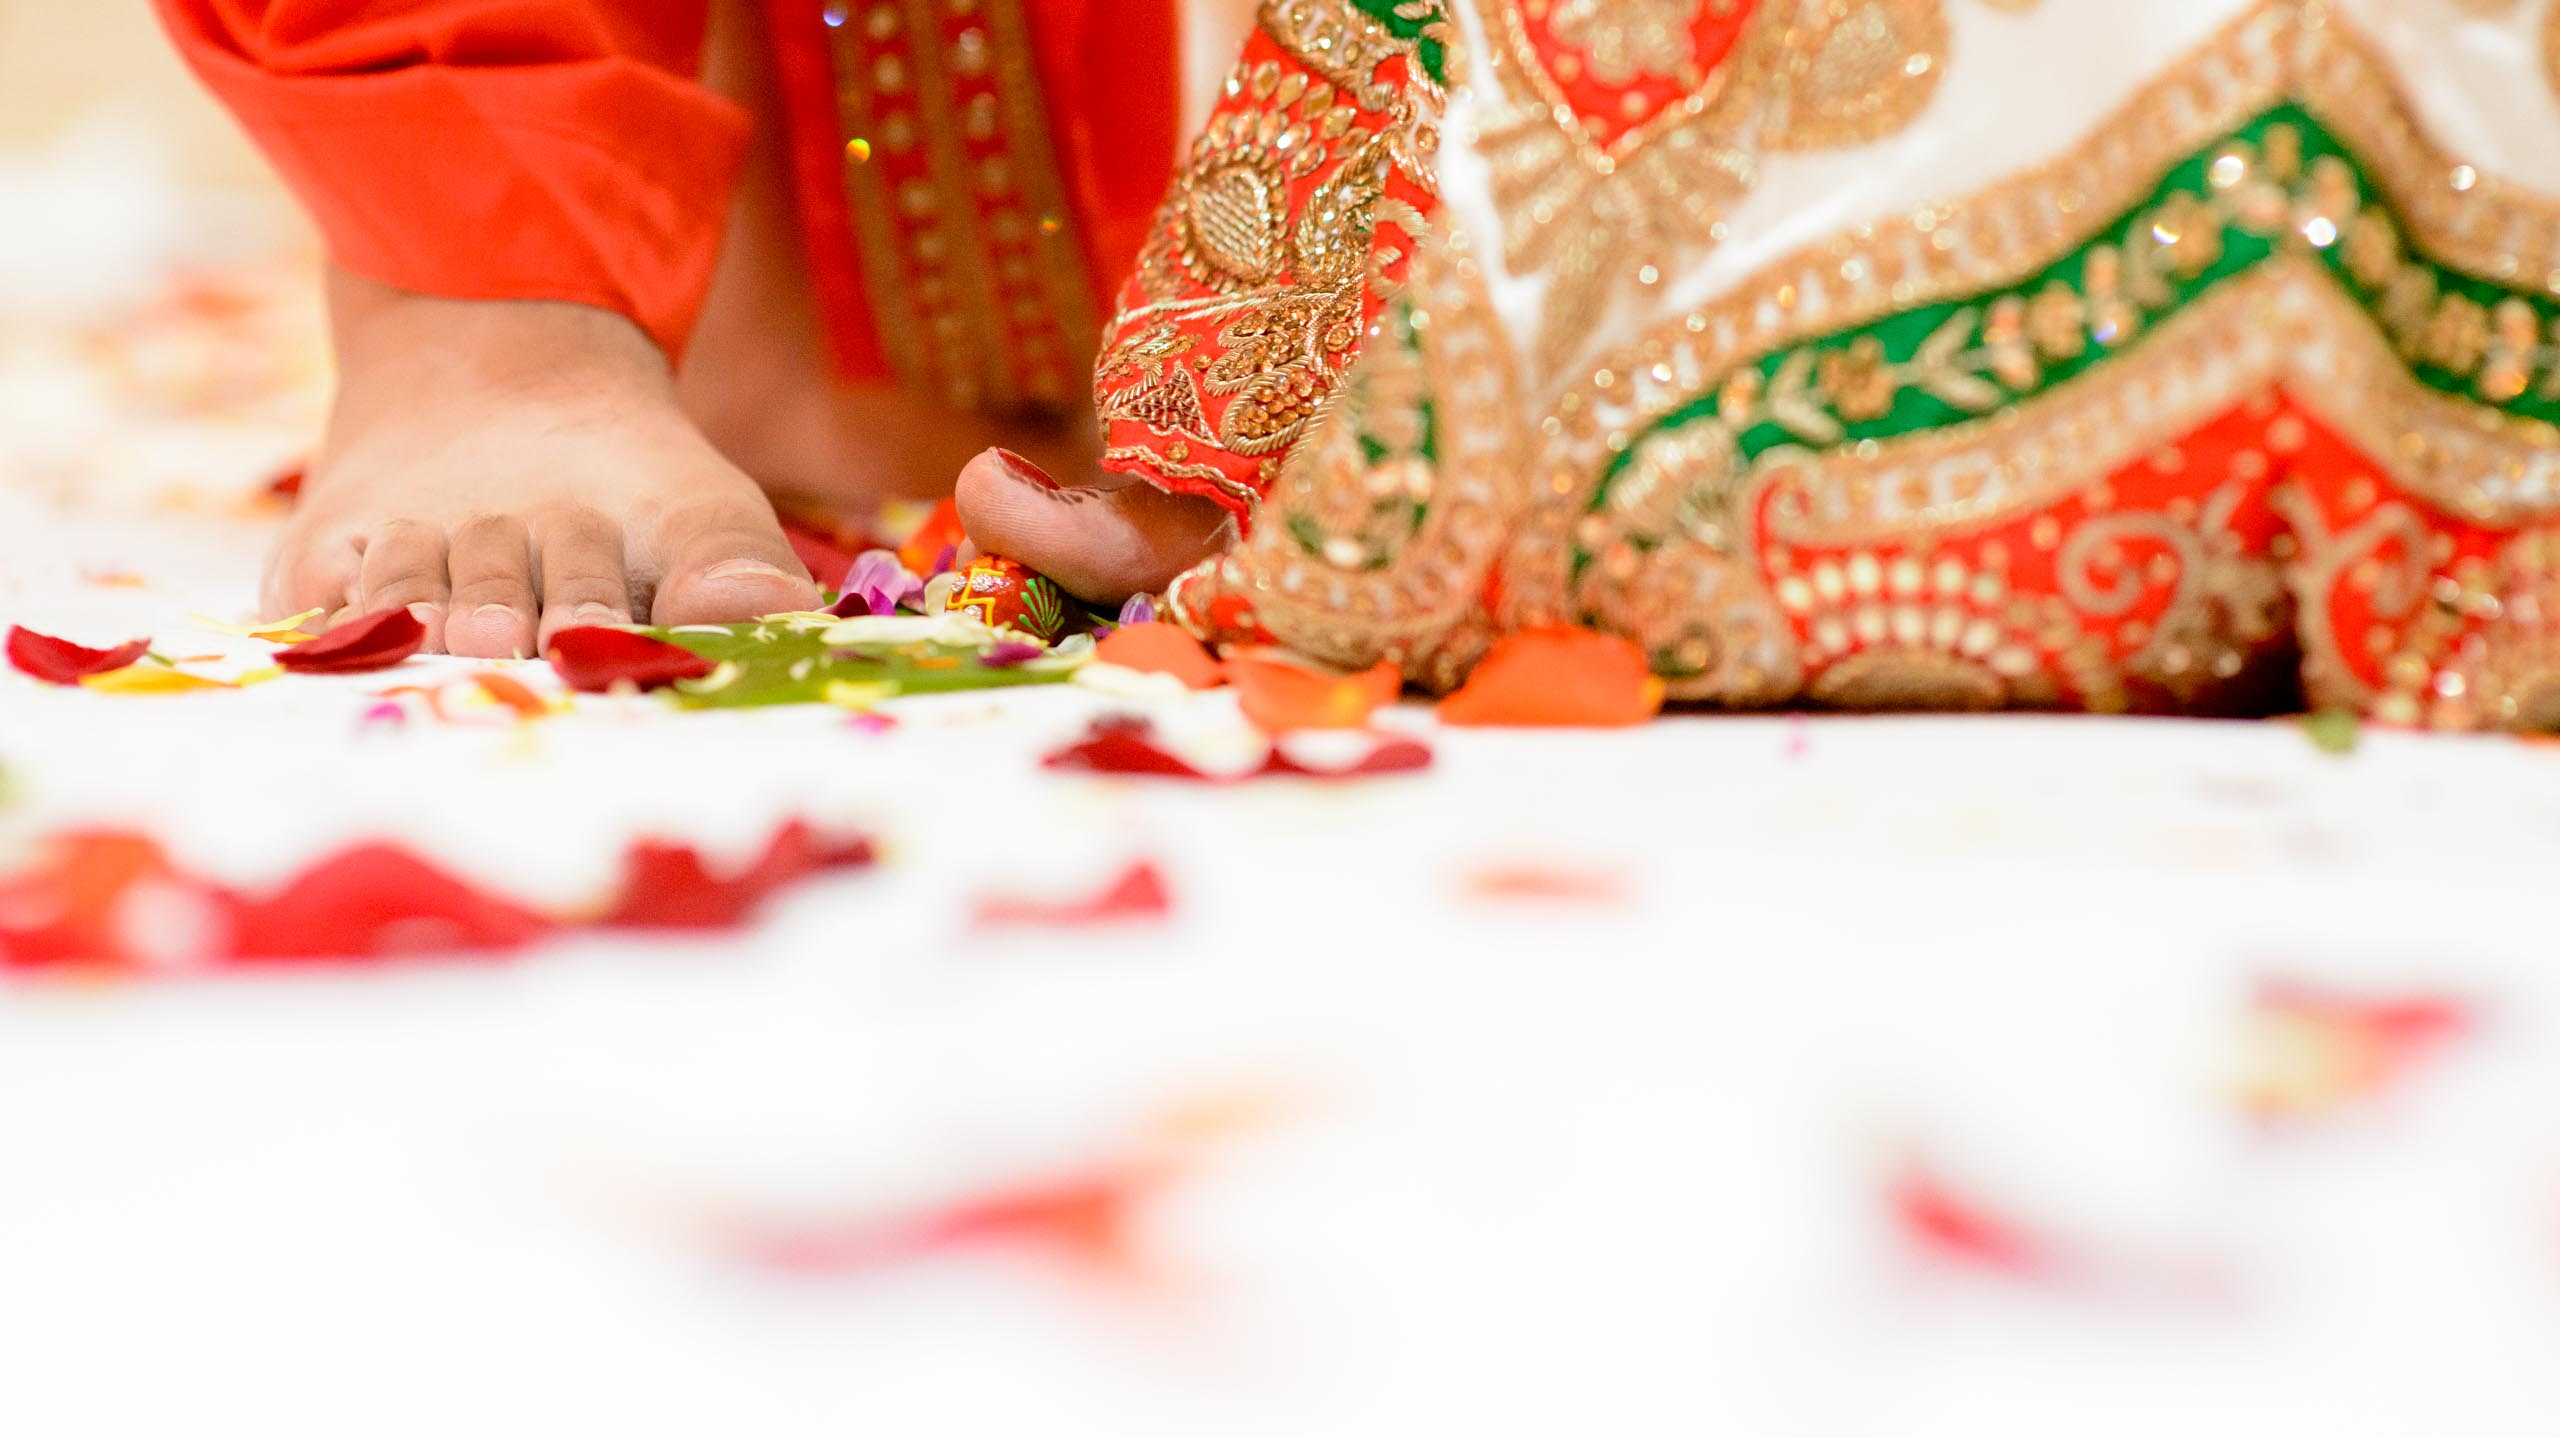 Amit&Amee-preview-edenmoments-60